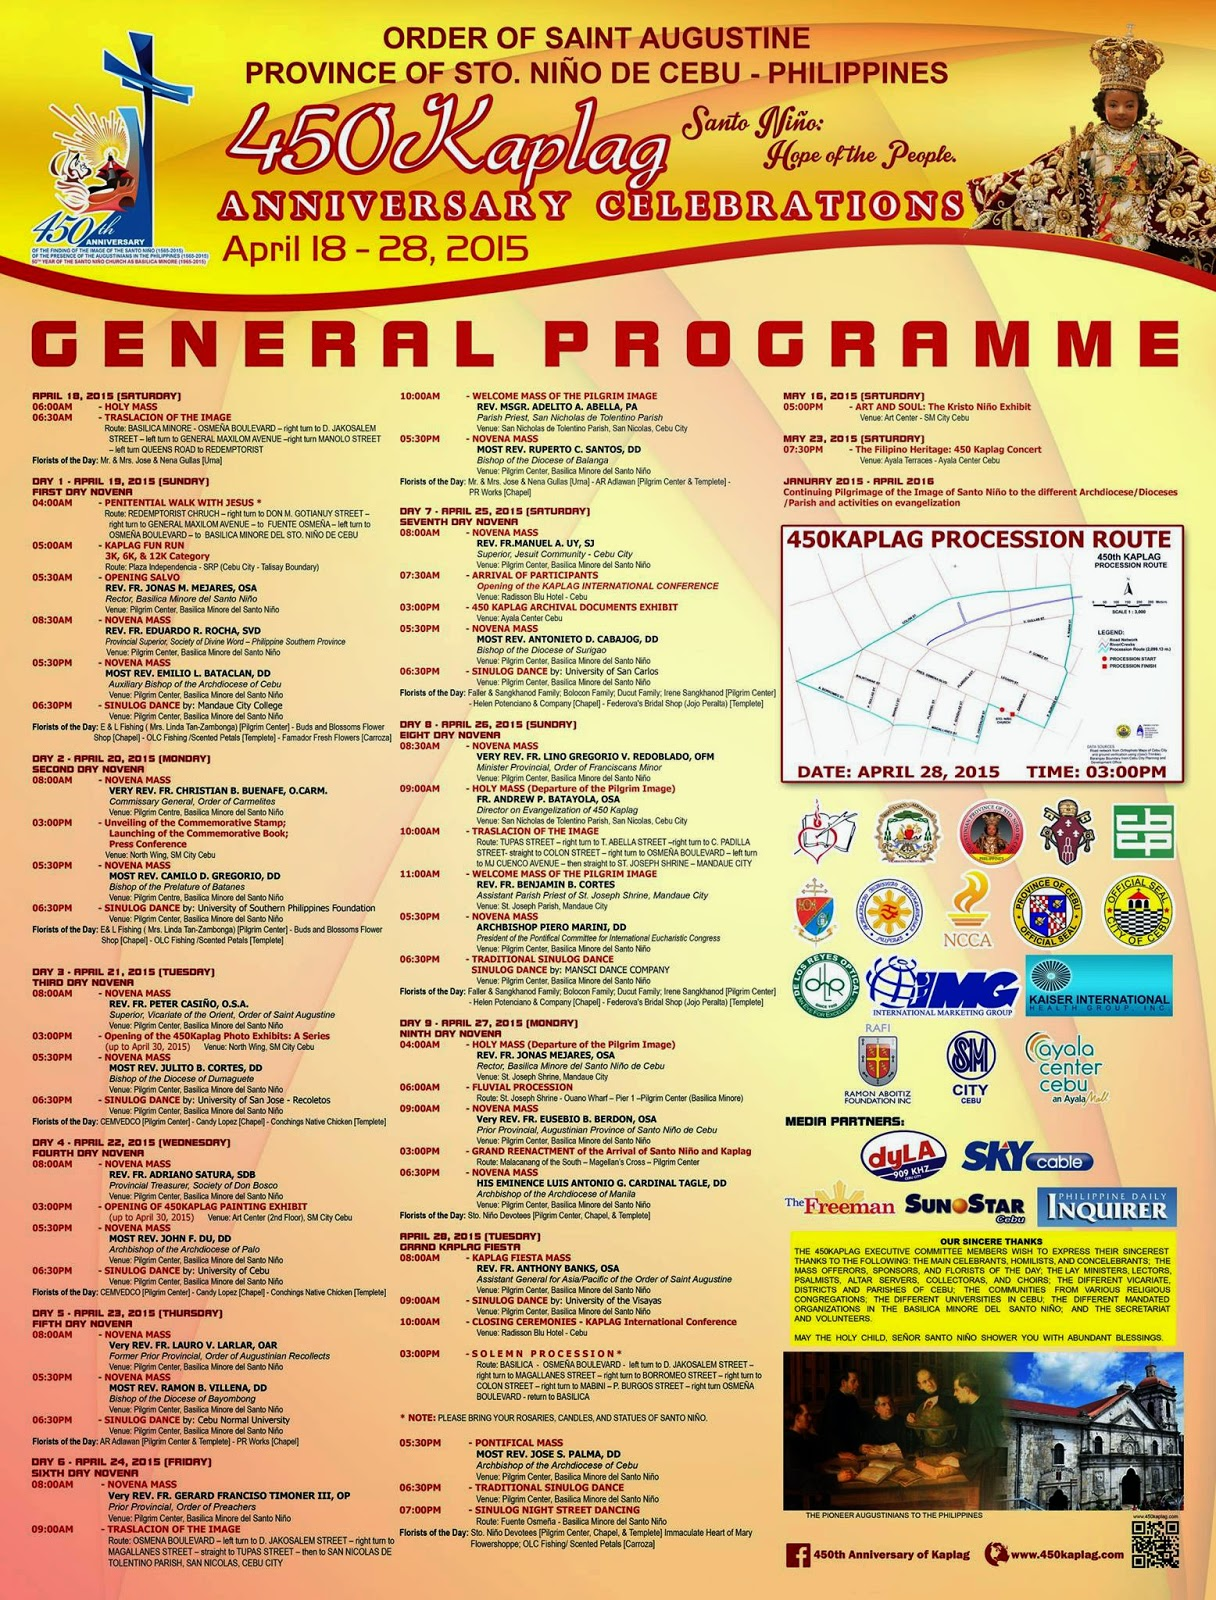 Kaplag-2015-Schedule-Celebration